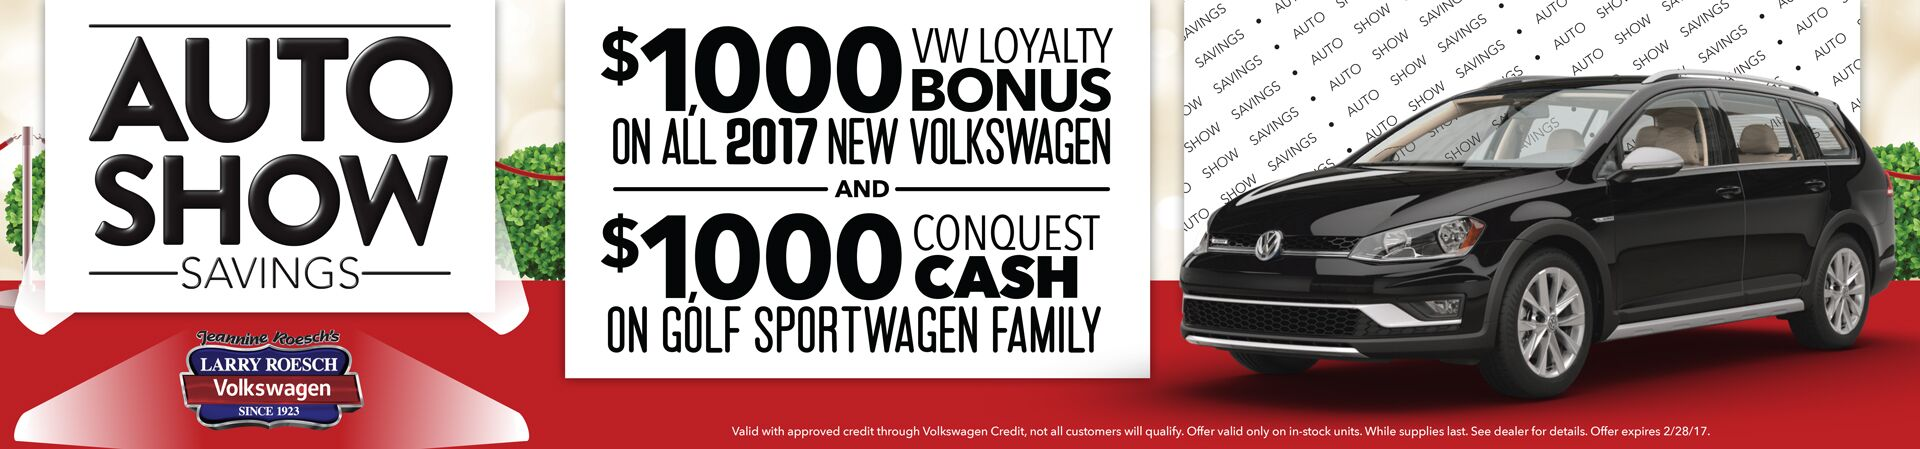 $1,000 Loyalty + $1,000 Conquest Cash